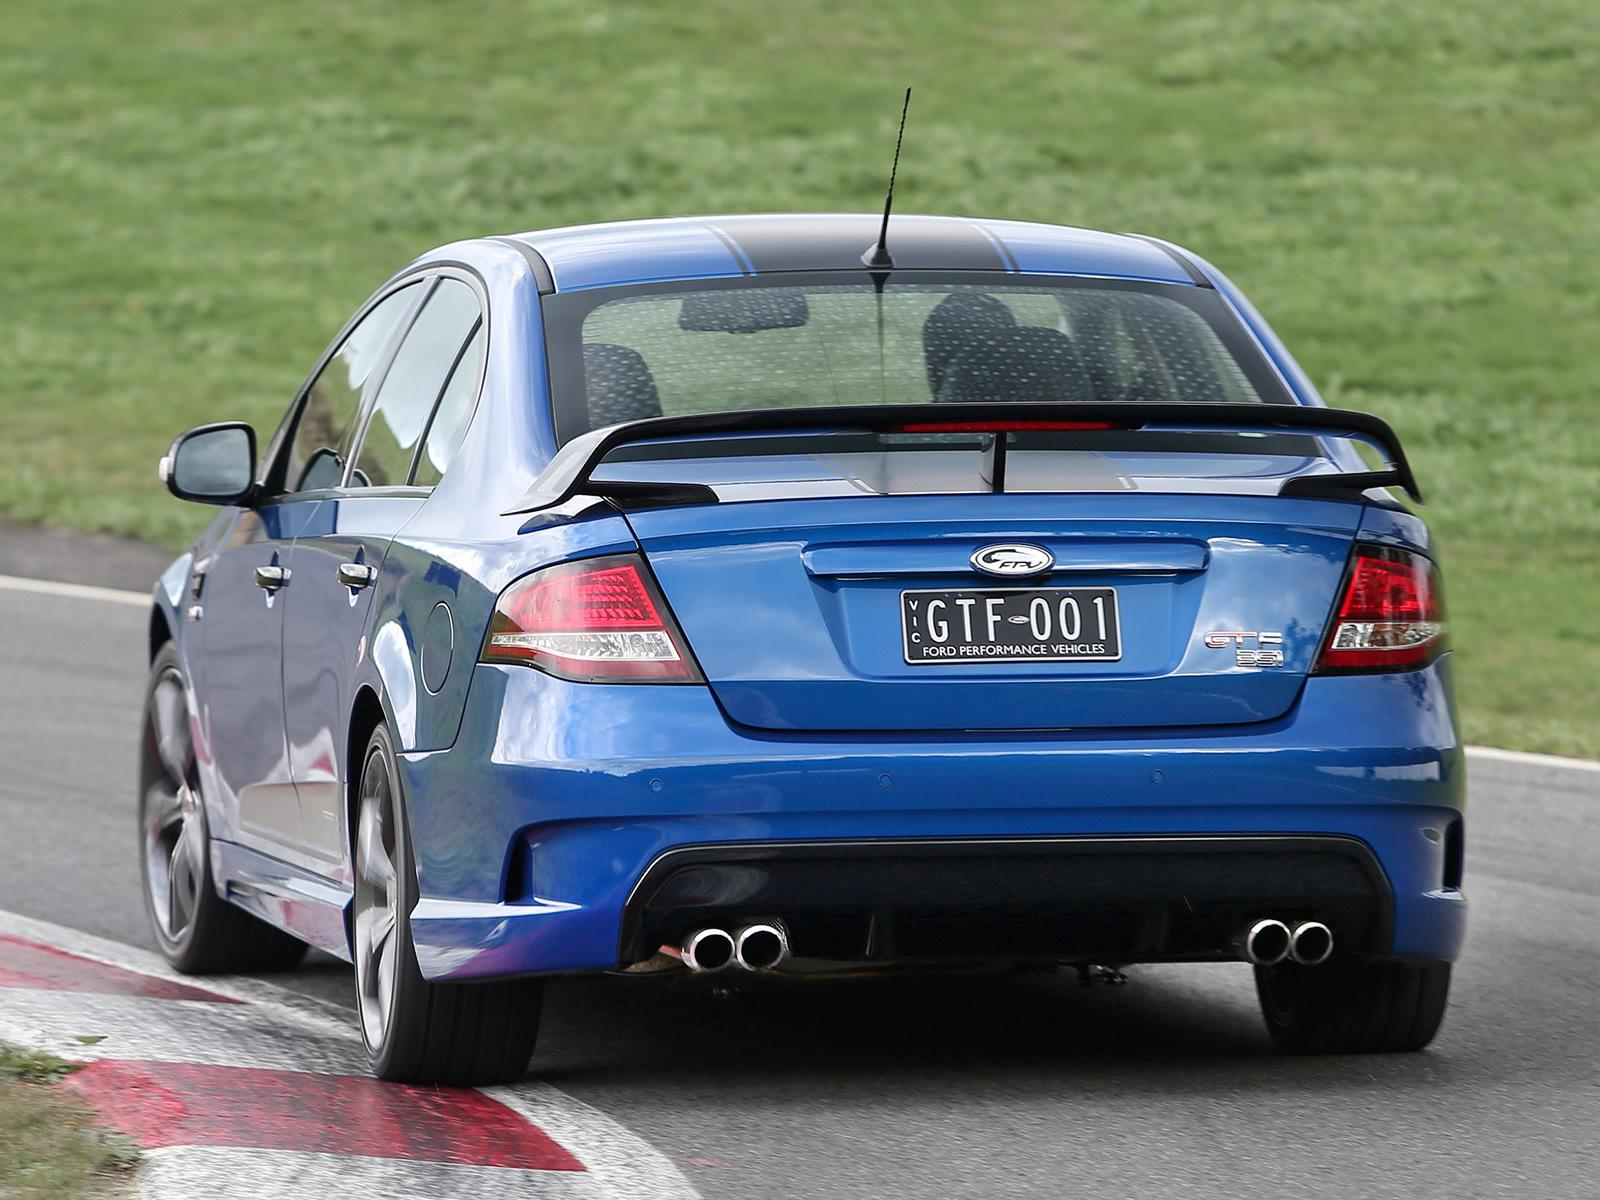 Toyota Of Alvin >> Ford Cars - News: FPV GT F 351 officially unveiled